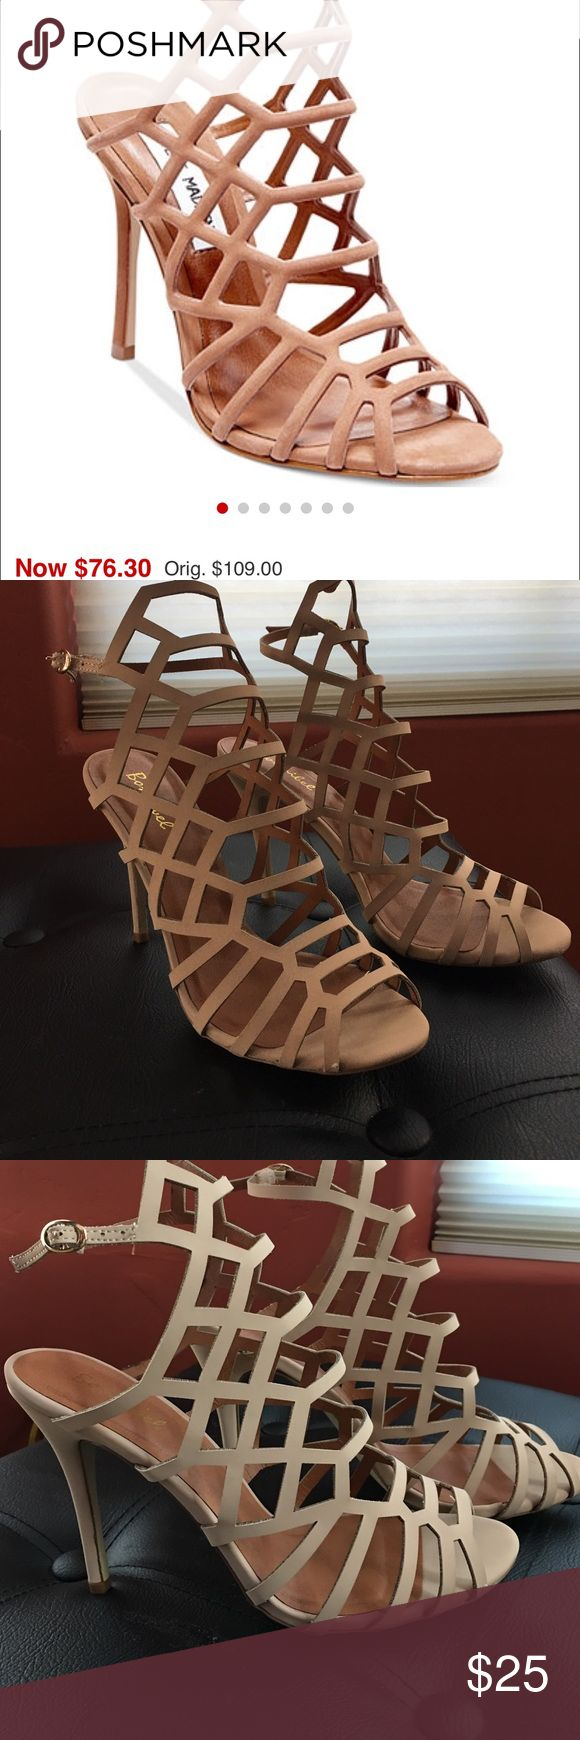 """Cute creme / beige strappy Steve Madden replica Worn only a few times. It's the exact replica of the Steve Madden strappy heels, the quality is just not as thick. It's a size """"9"""" but it fits like an 8-8.5!! Cute color , matches with everything. Steve Madden Shoes Heels"""